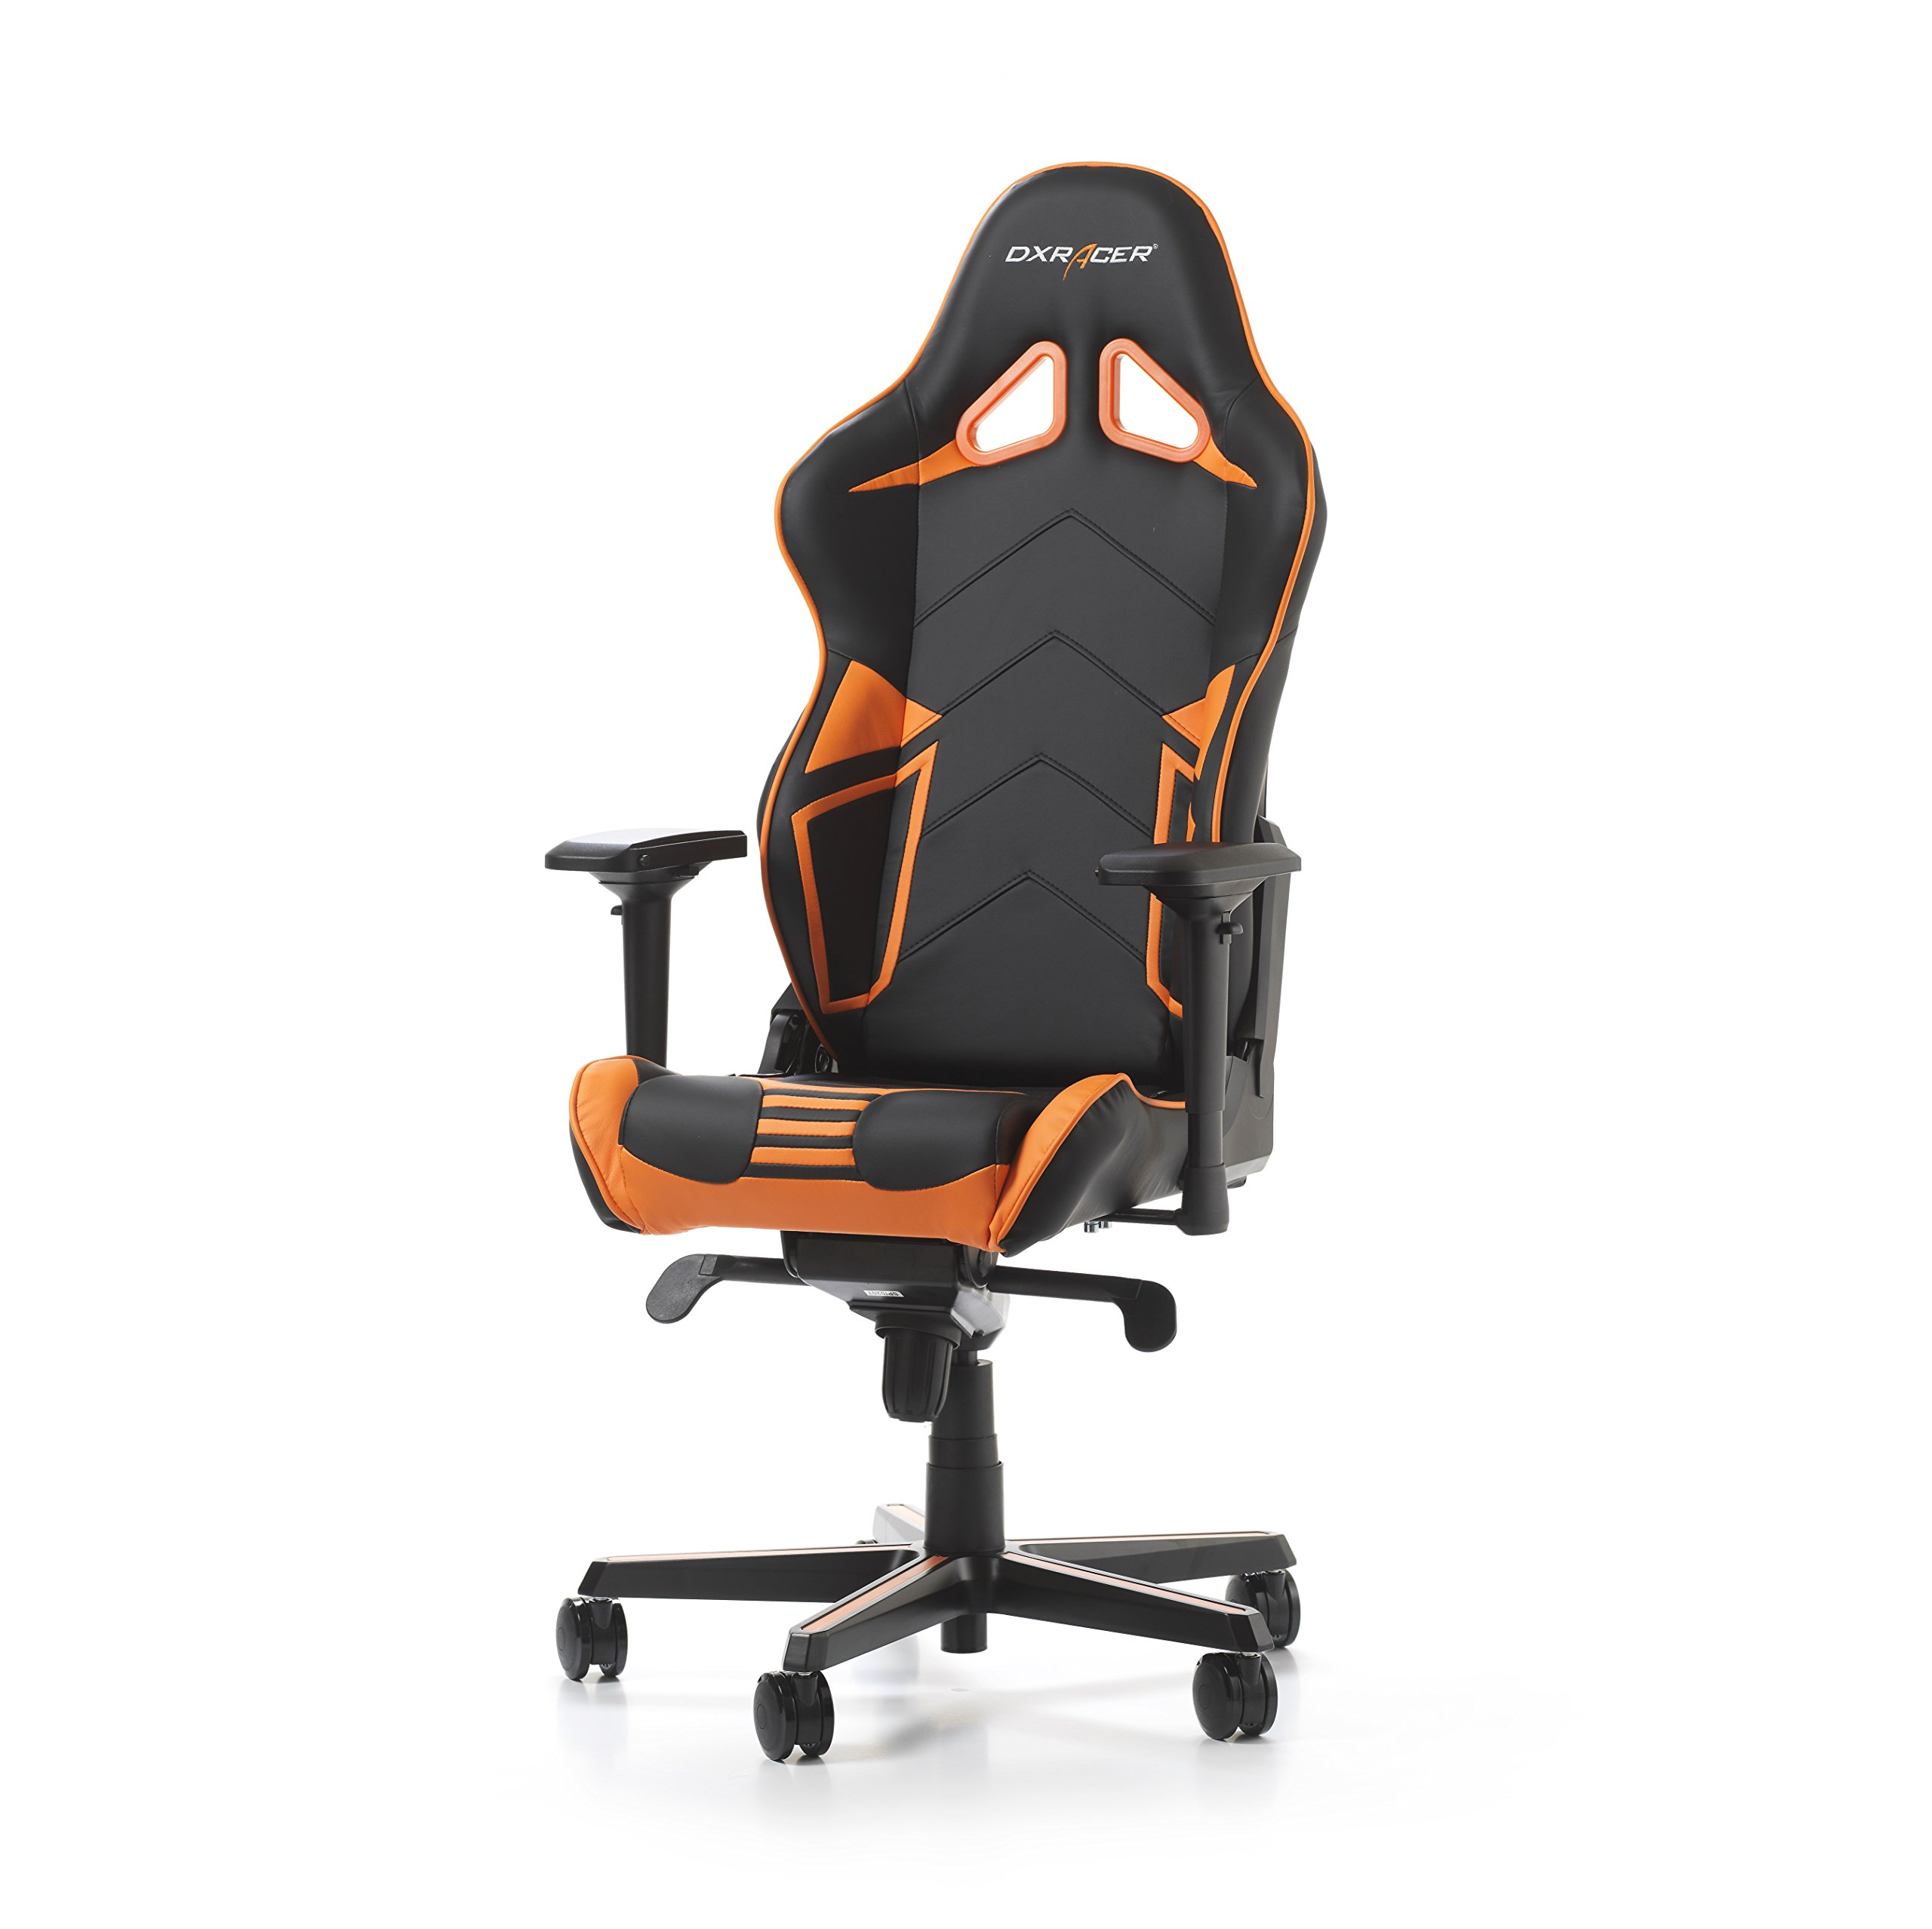 DXRacer Racing Series PU Leather OH/RV131/NO Racing Seat Office Chair Gaming Ergonomic Adjustable Computer Chair with - Includes Head and Lumbar Support Pillows (Black/Orange) by DXRacer